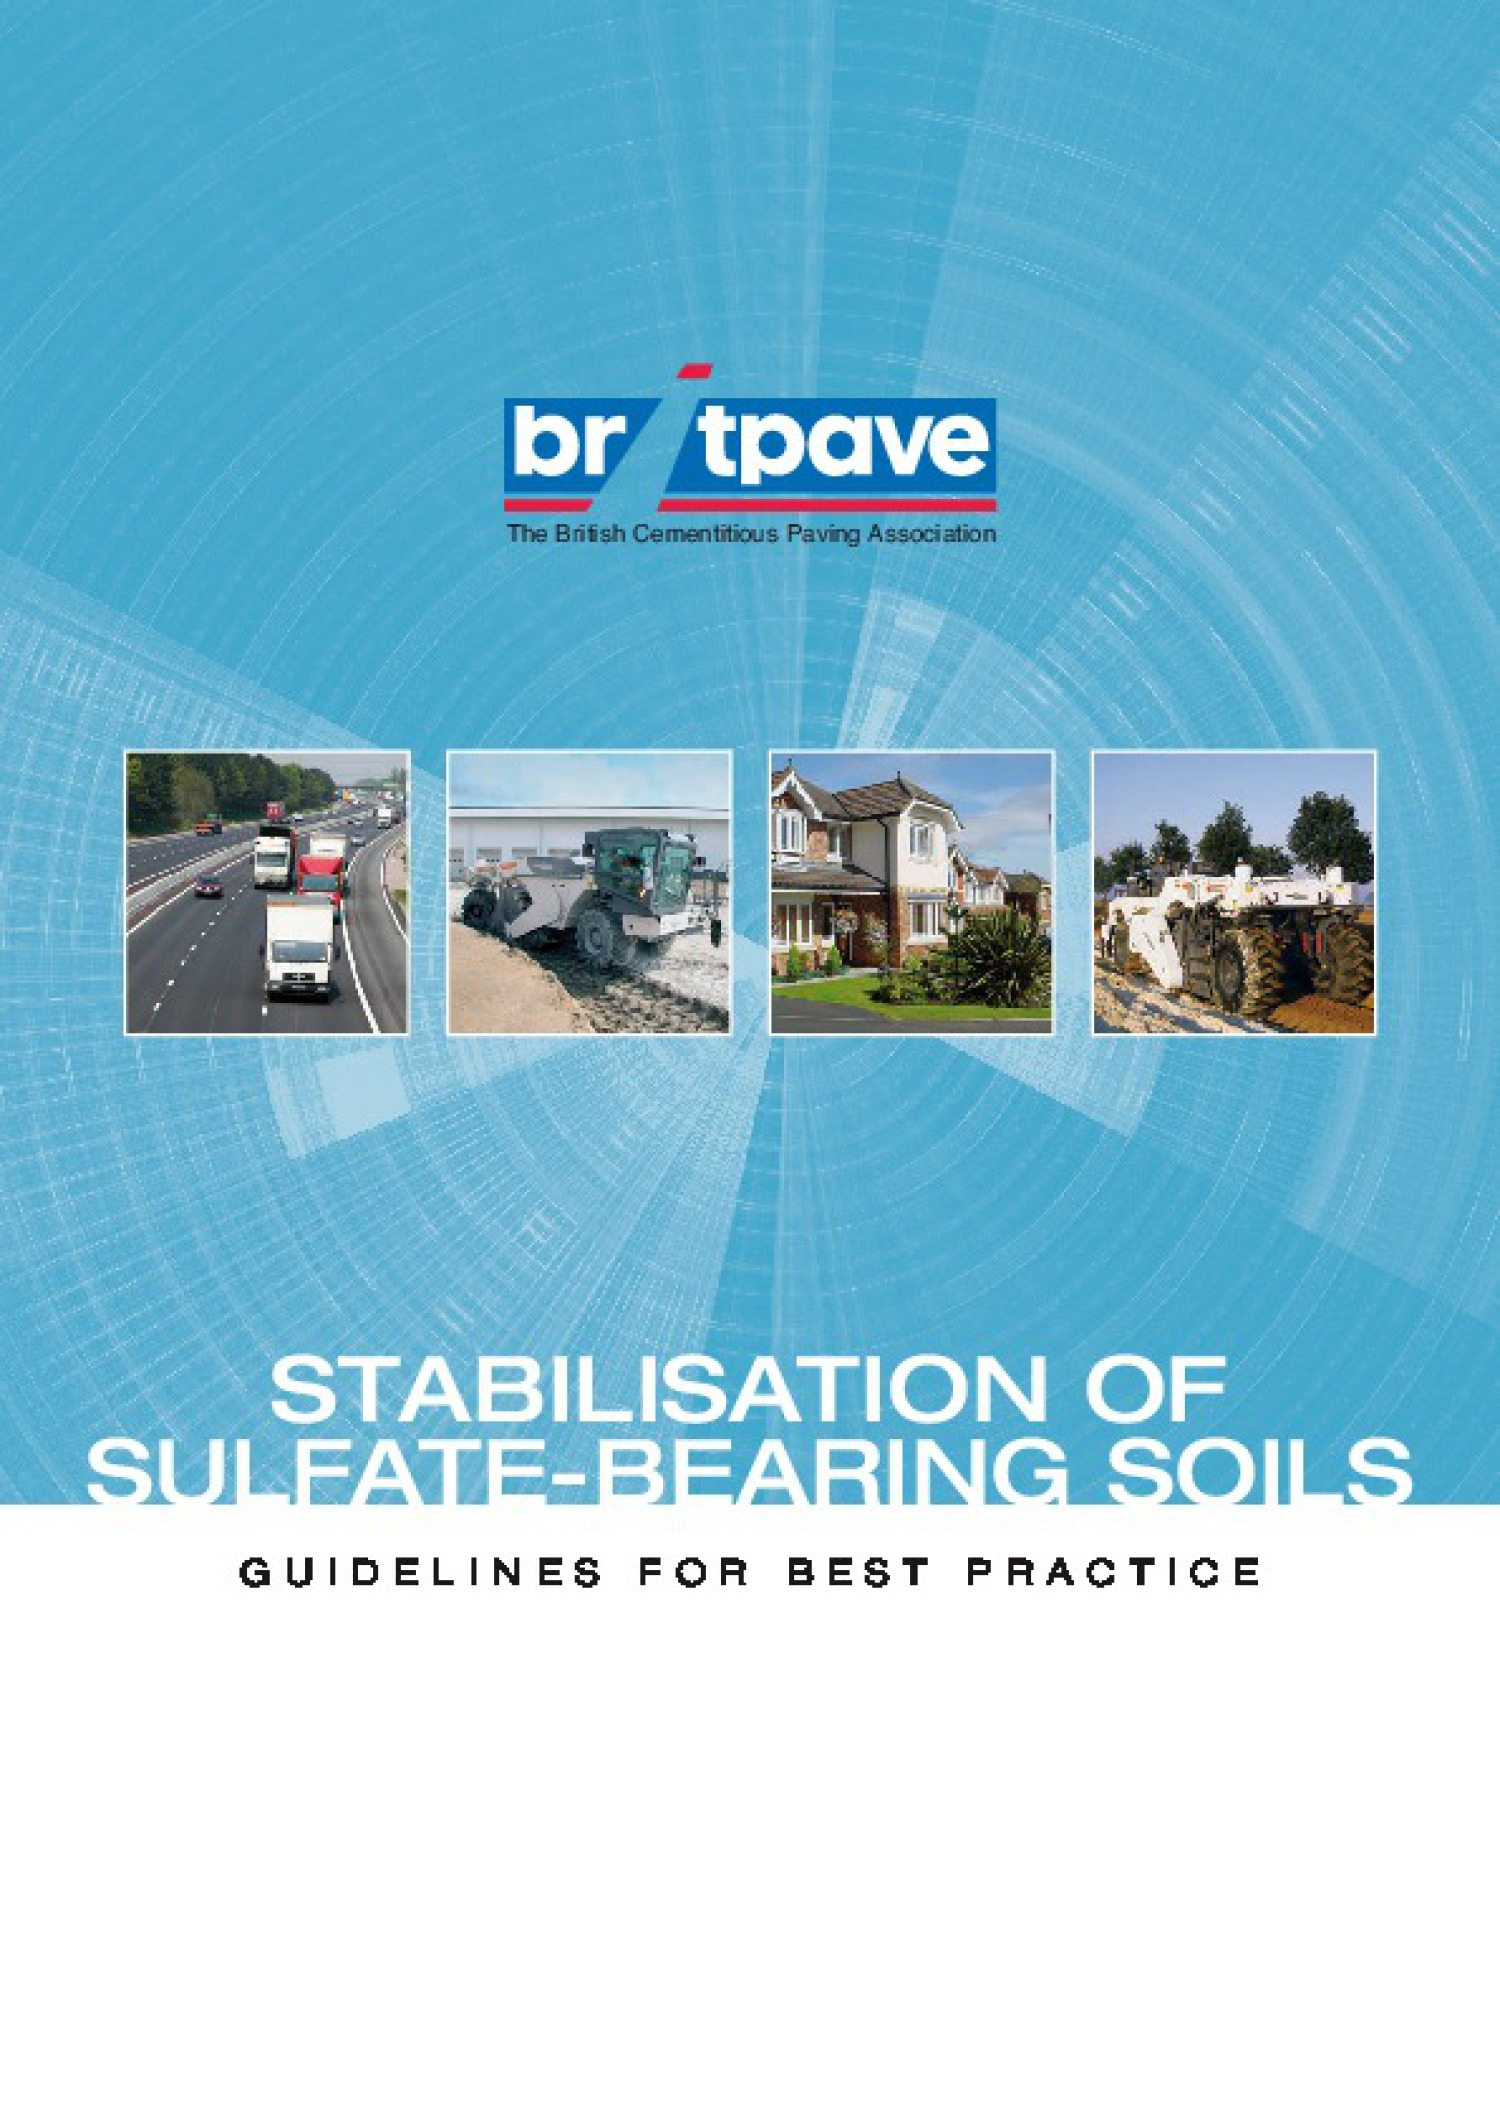 Picture of Guidelines for stabilisation of sulfate-bearing soils